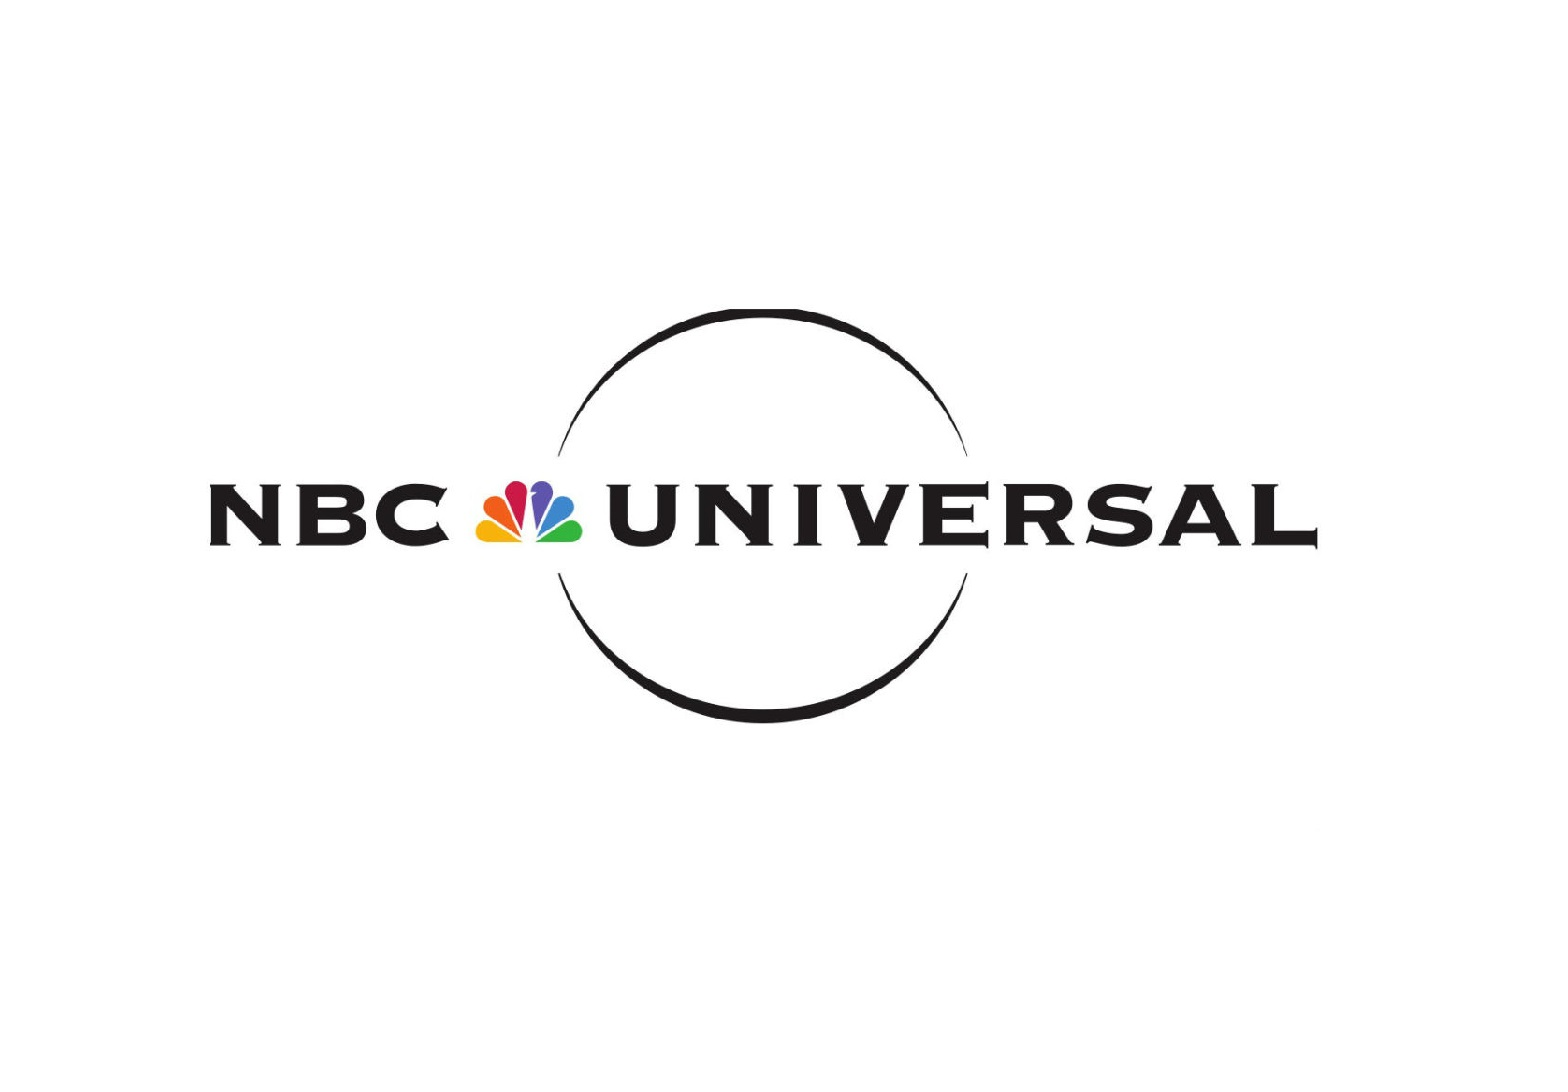 NBC Universal in black text